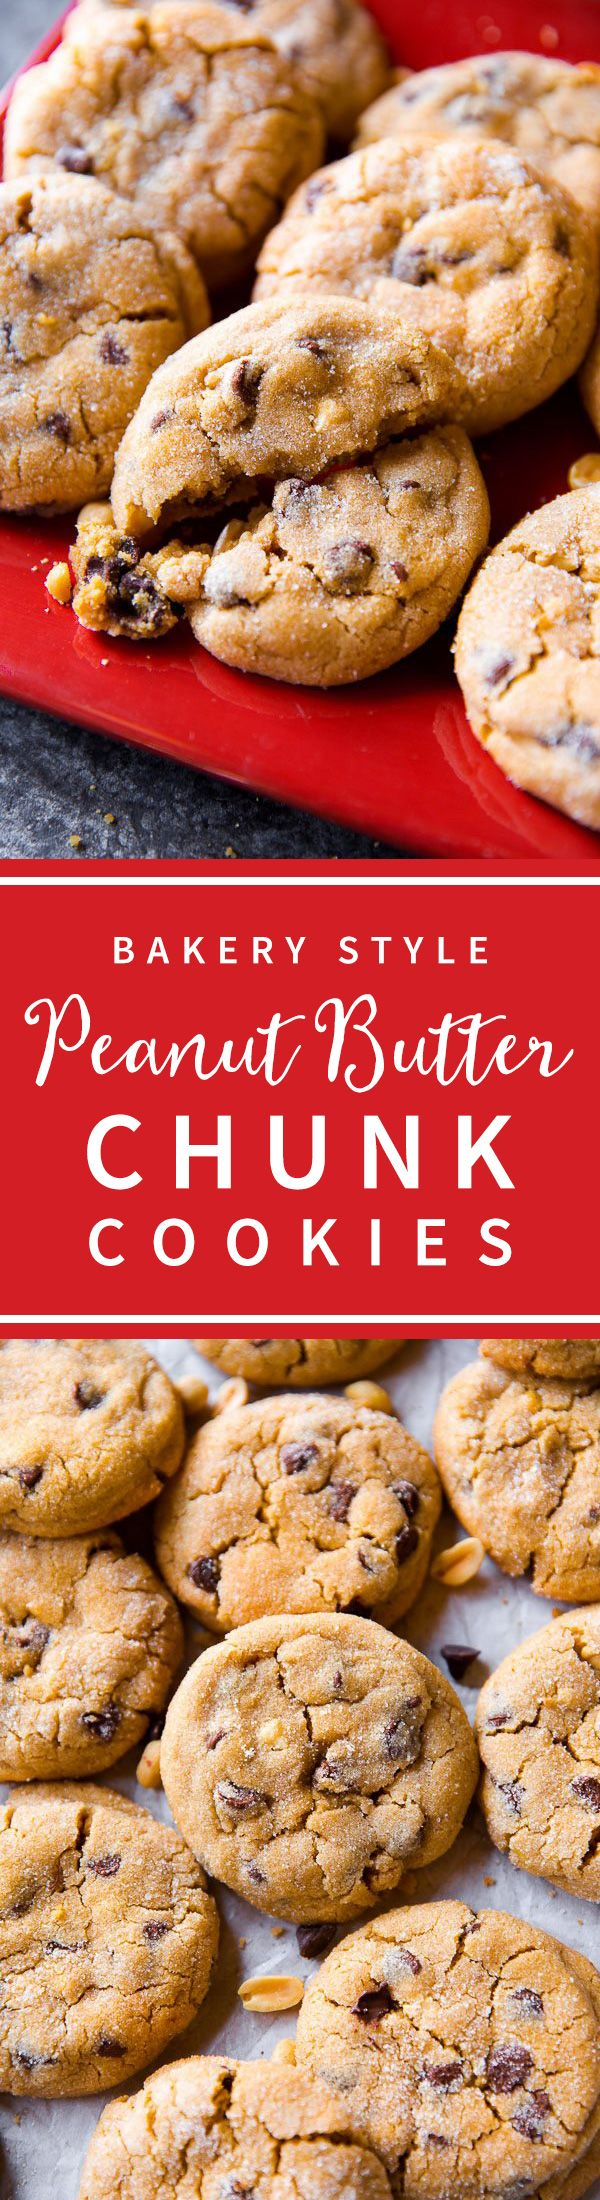 Soft Peanut Butter Cookies Big And Bakery Style Peanut Butter Chocolate Soft Peanut Butter Cookies Peanut Butter Recipes Peanut Butter Chocolate Chip Cookies